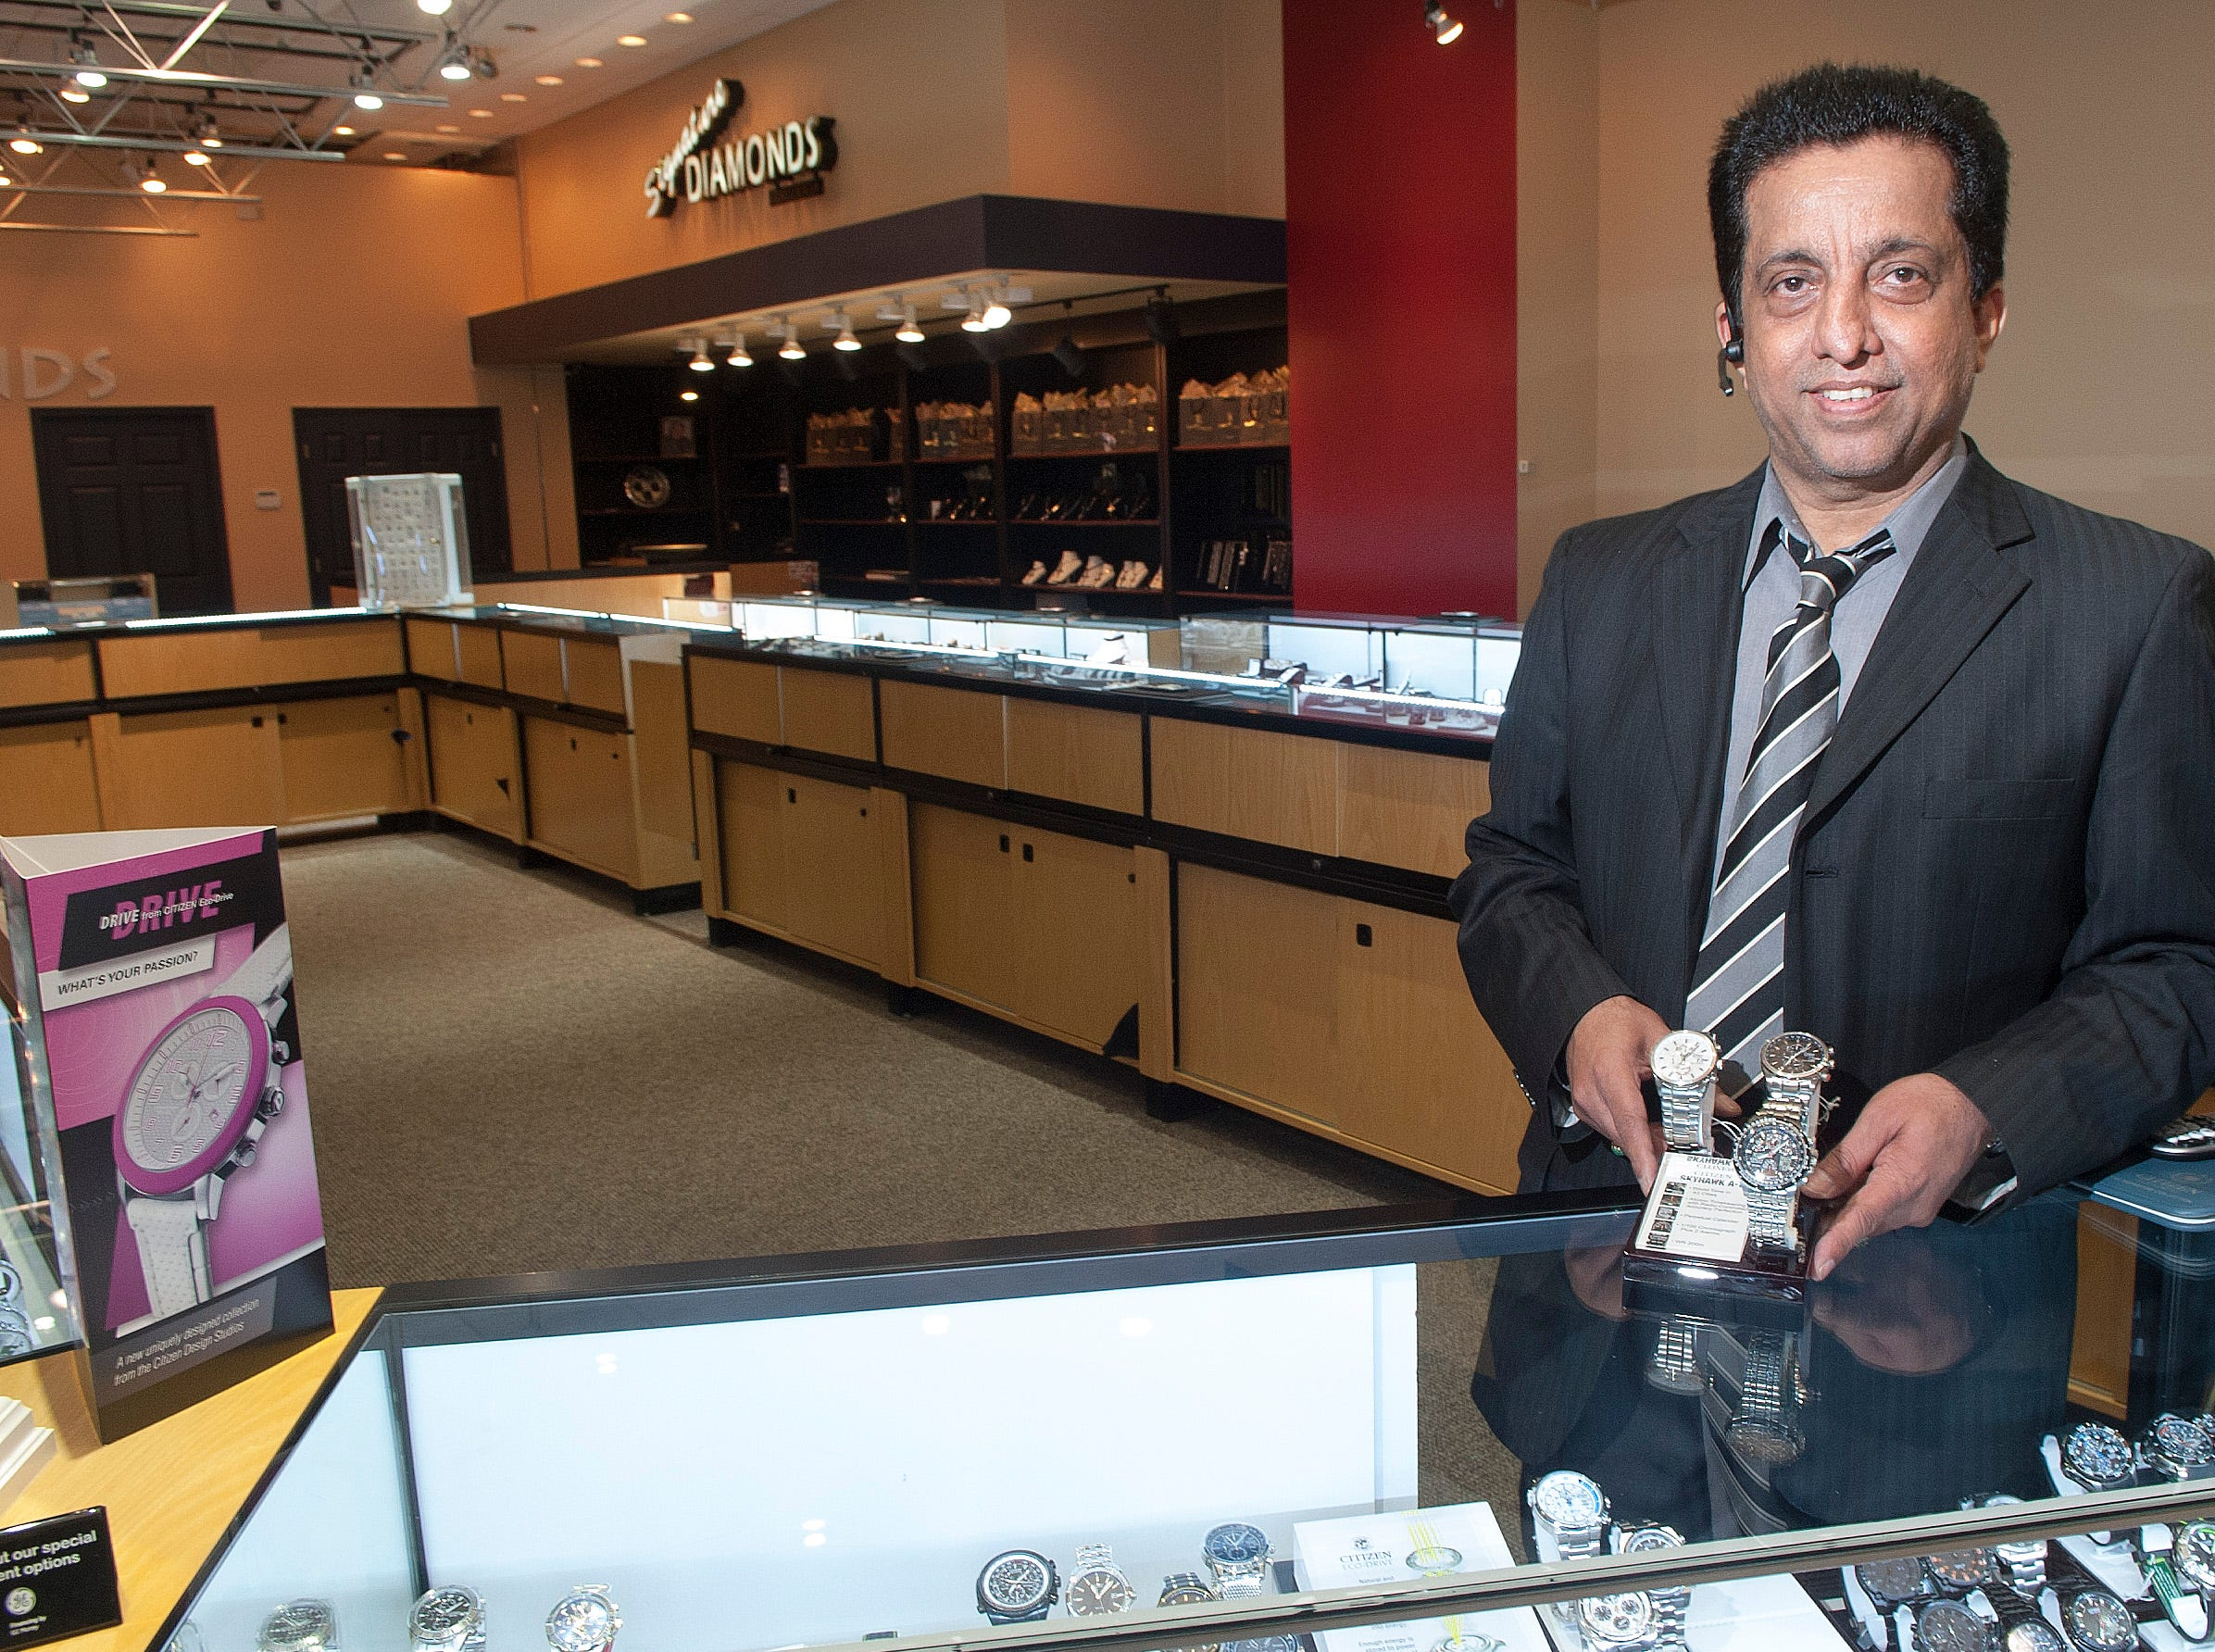 """""""Ike"""" Amyn Lalani recently expanded his store Signature Diamonds Galleria into a larger space at the Knoxville Center Mall.  The store offers Watches Custom Jewelry and repairs on site.An effort is underway to rejuvenate Knoxville Center Mall and the surrounding area including new signage, vegetation management and new business organization. The mall has suffered over the years from a loss of businesses and shoppers and Simon Properties had the property on the market for sale last year. ( J. MILES CARY/NEWS SENTINEL )"""